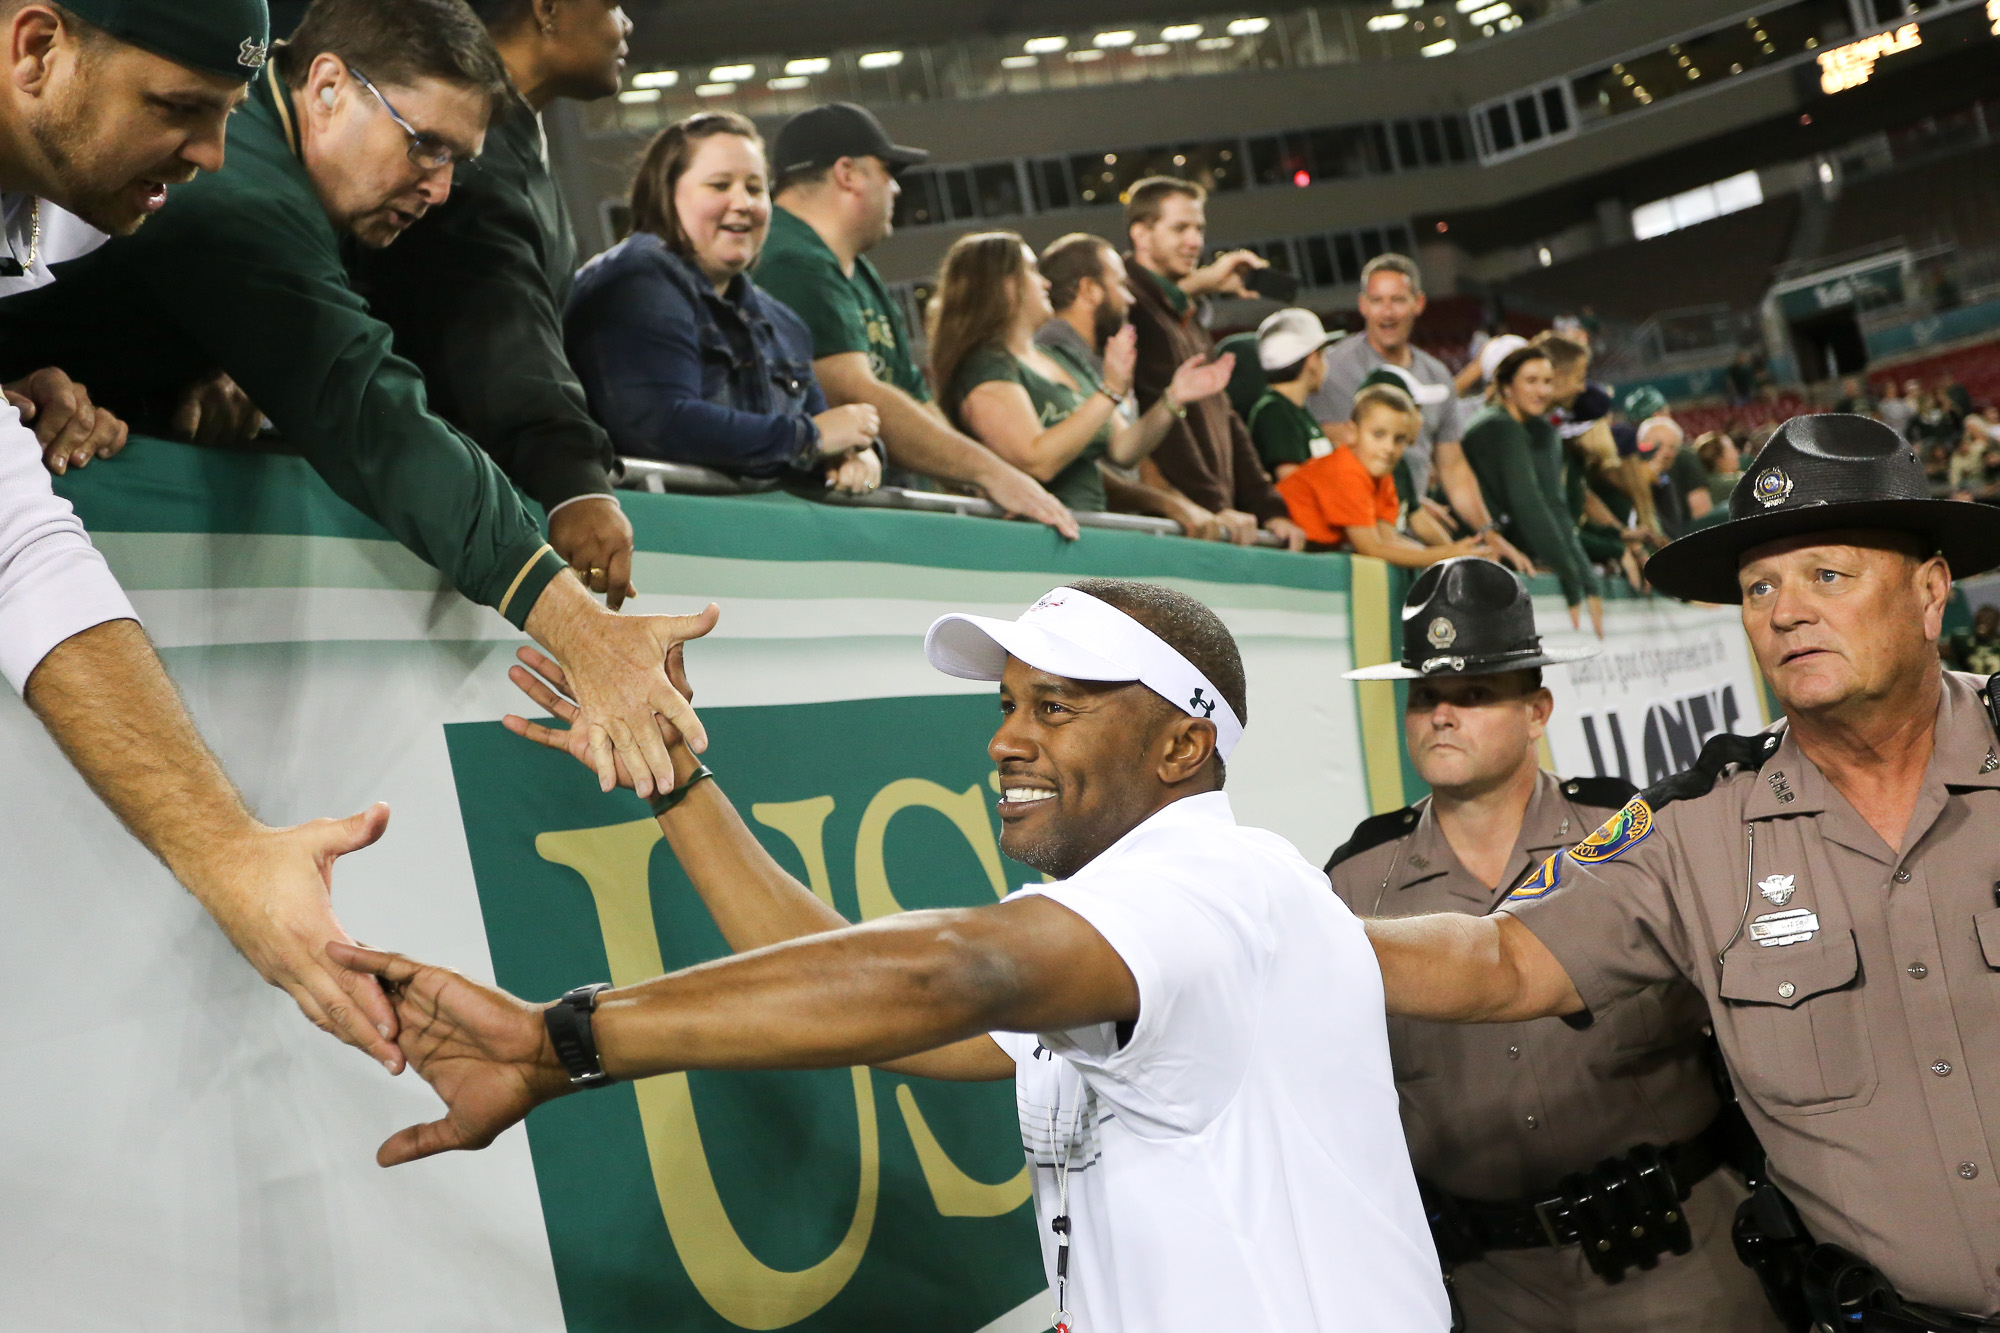 USF could spell inclusion into Big 12.